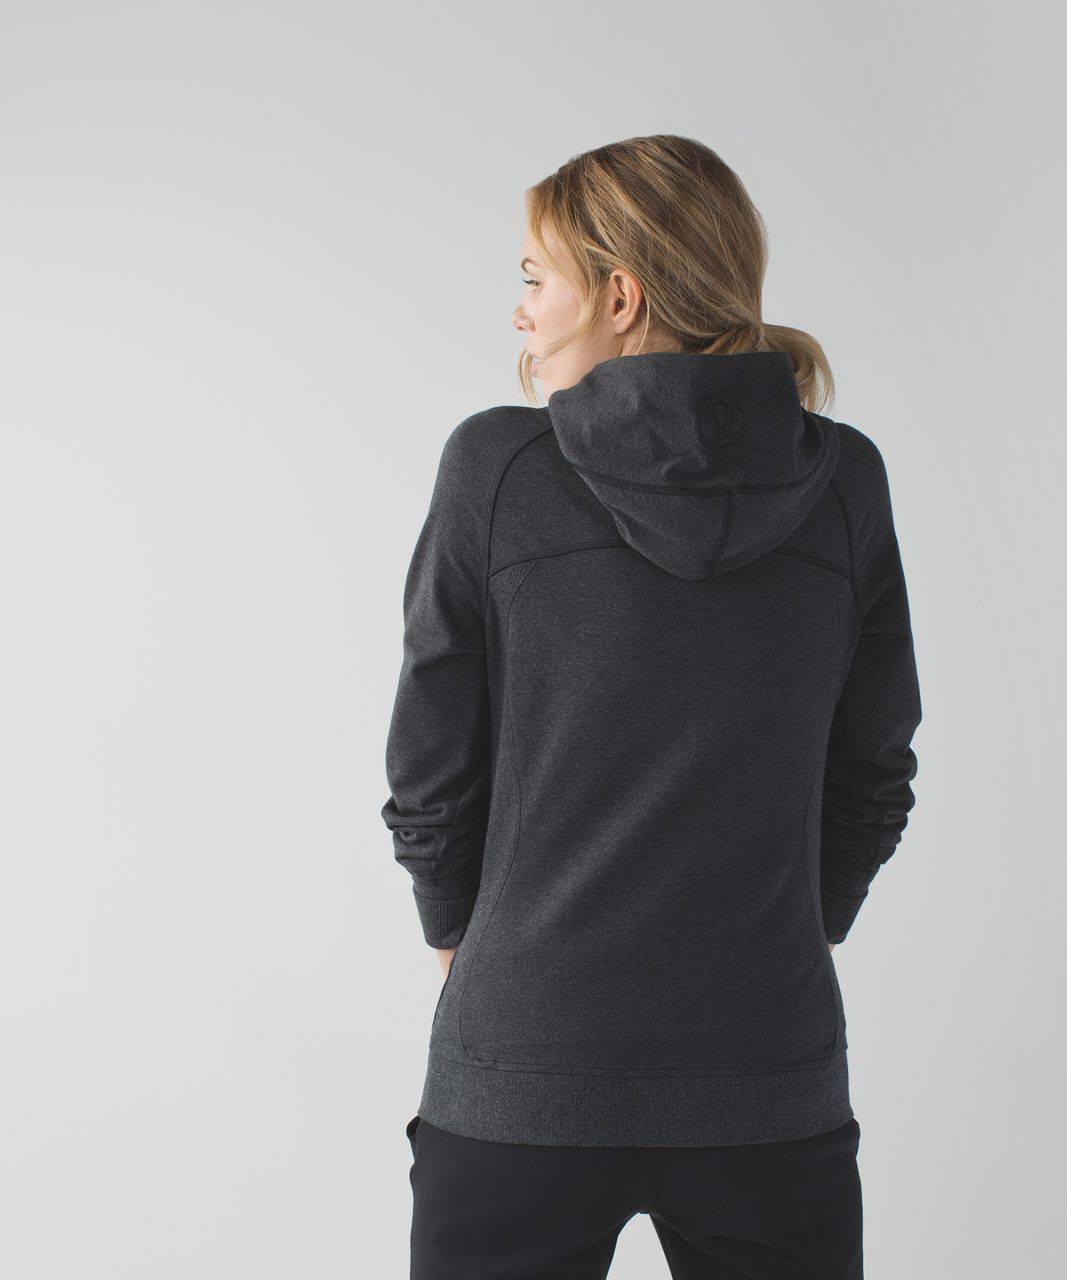 Lululemon Scuba Hoodie III *Terry - Heathered Black